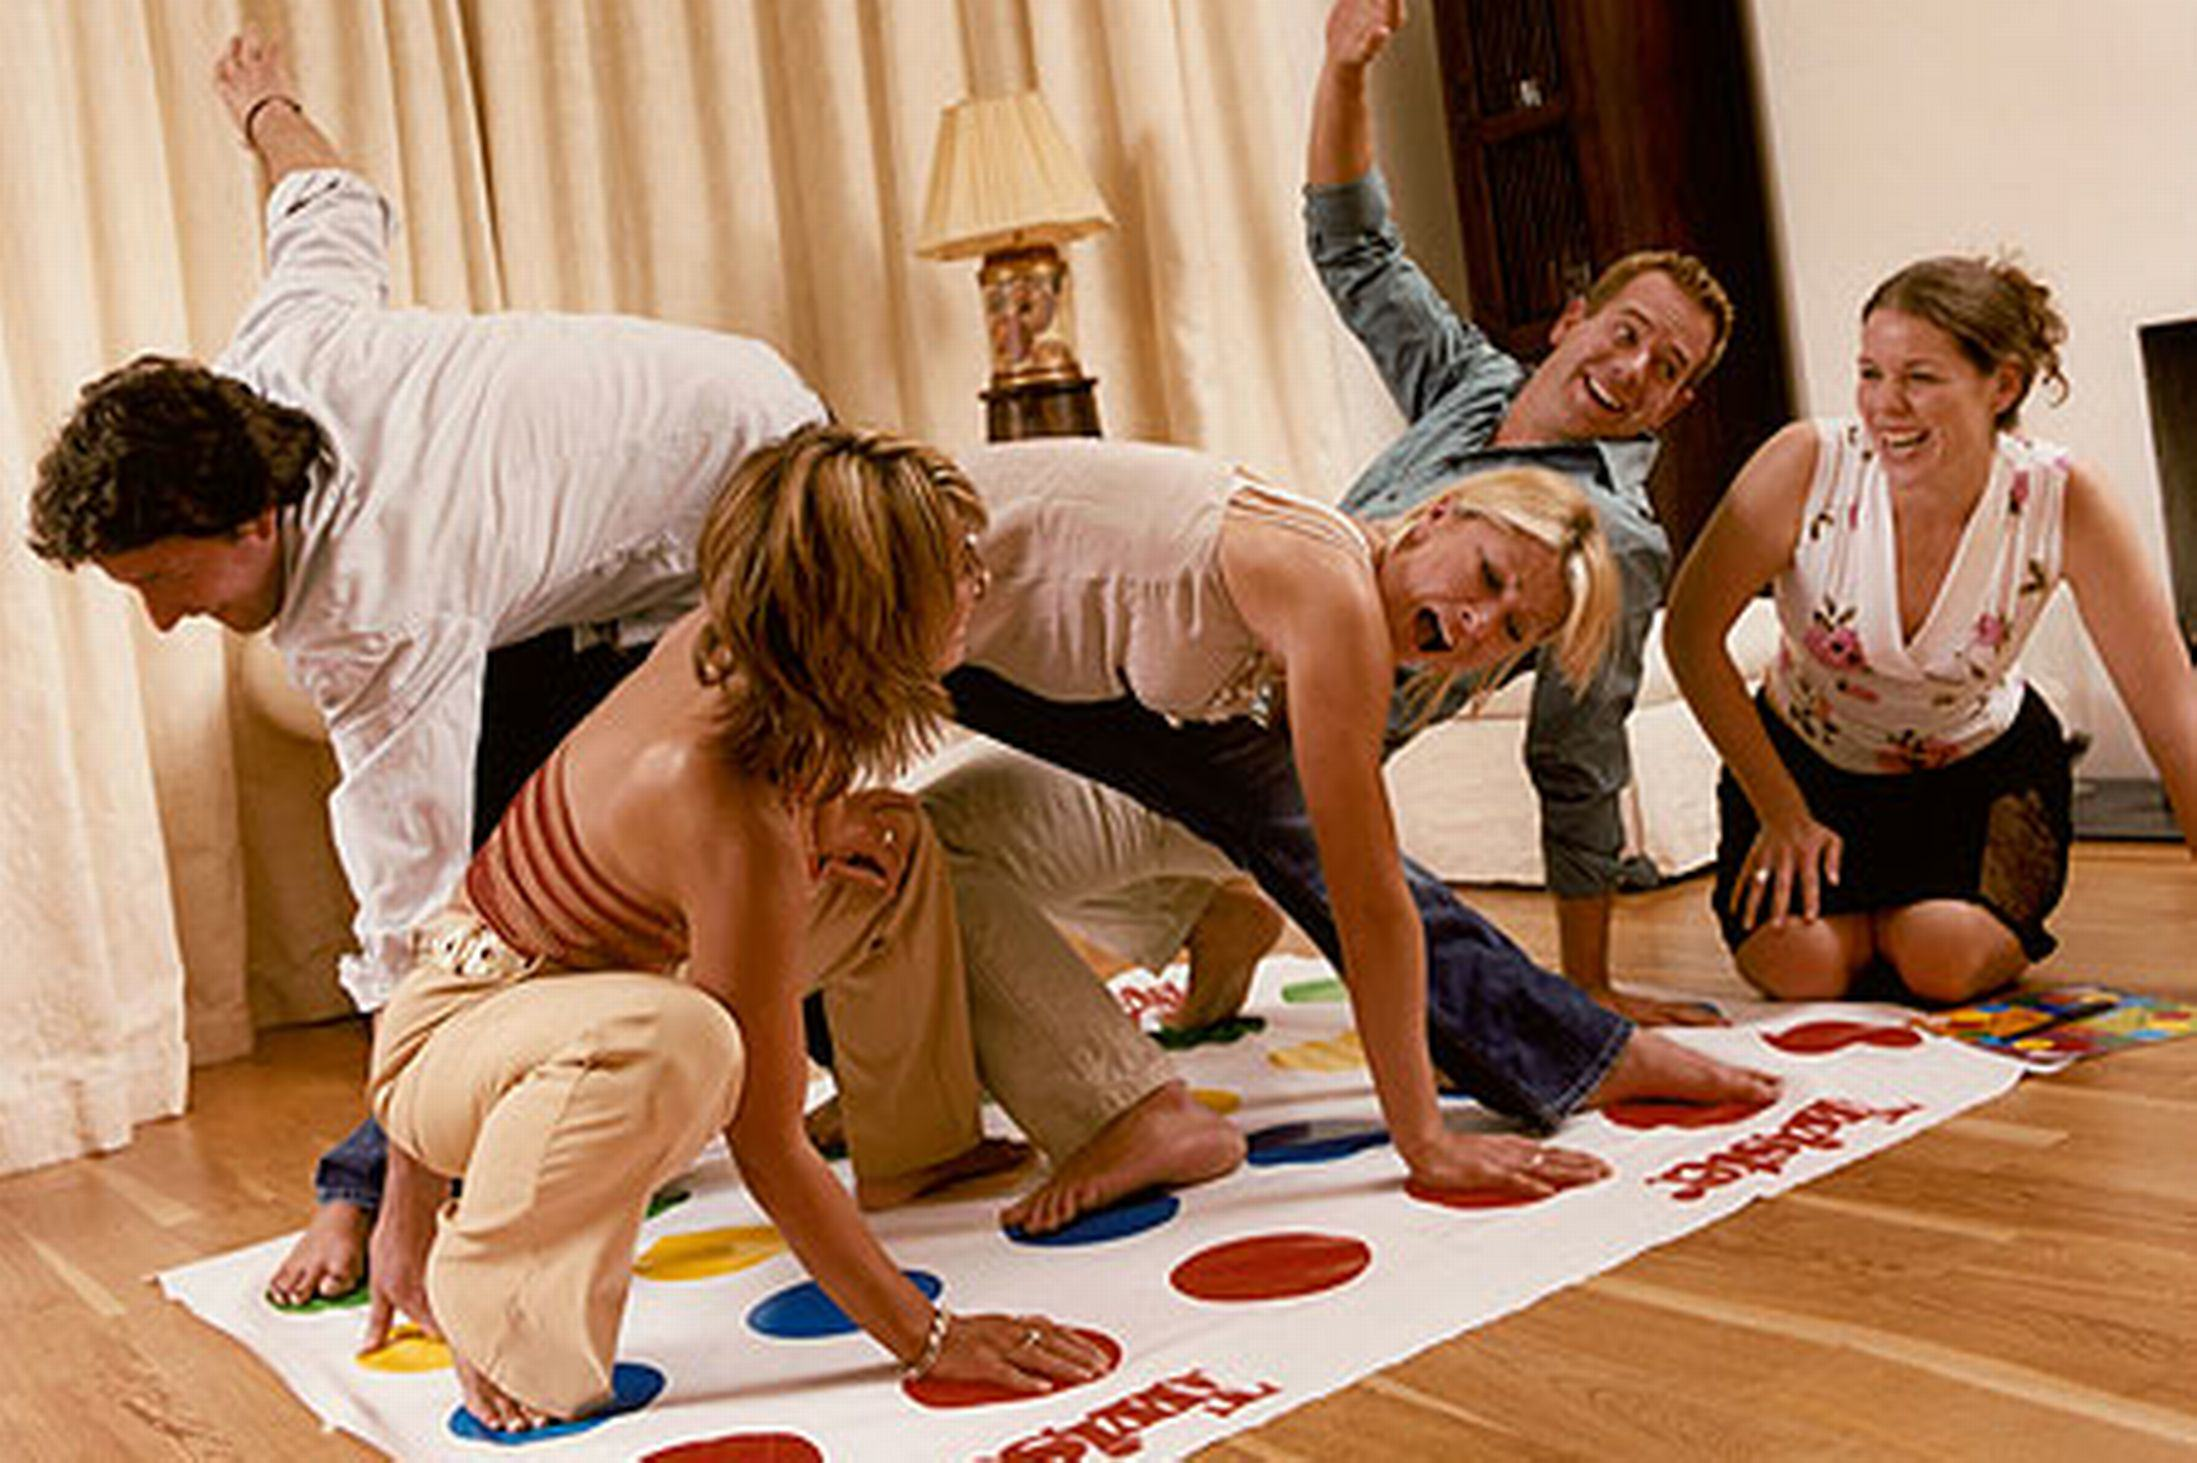 adults-playing-twister-pic-getty-images-585390329